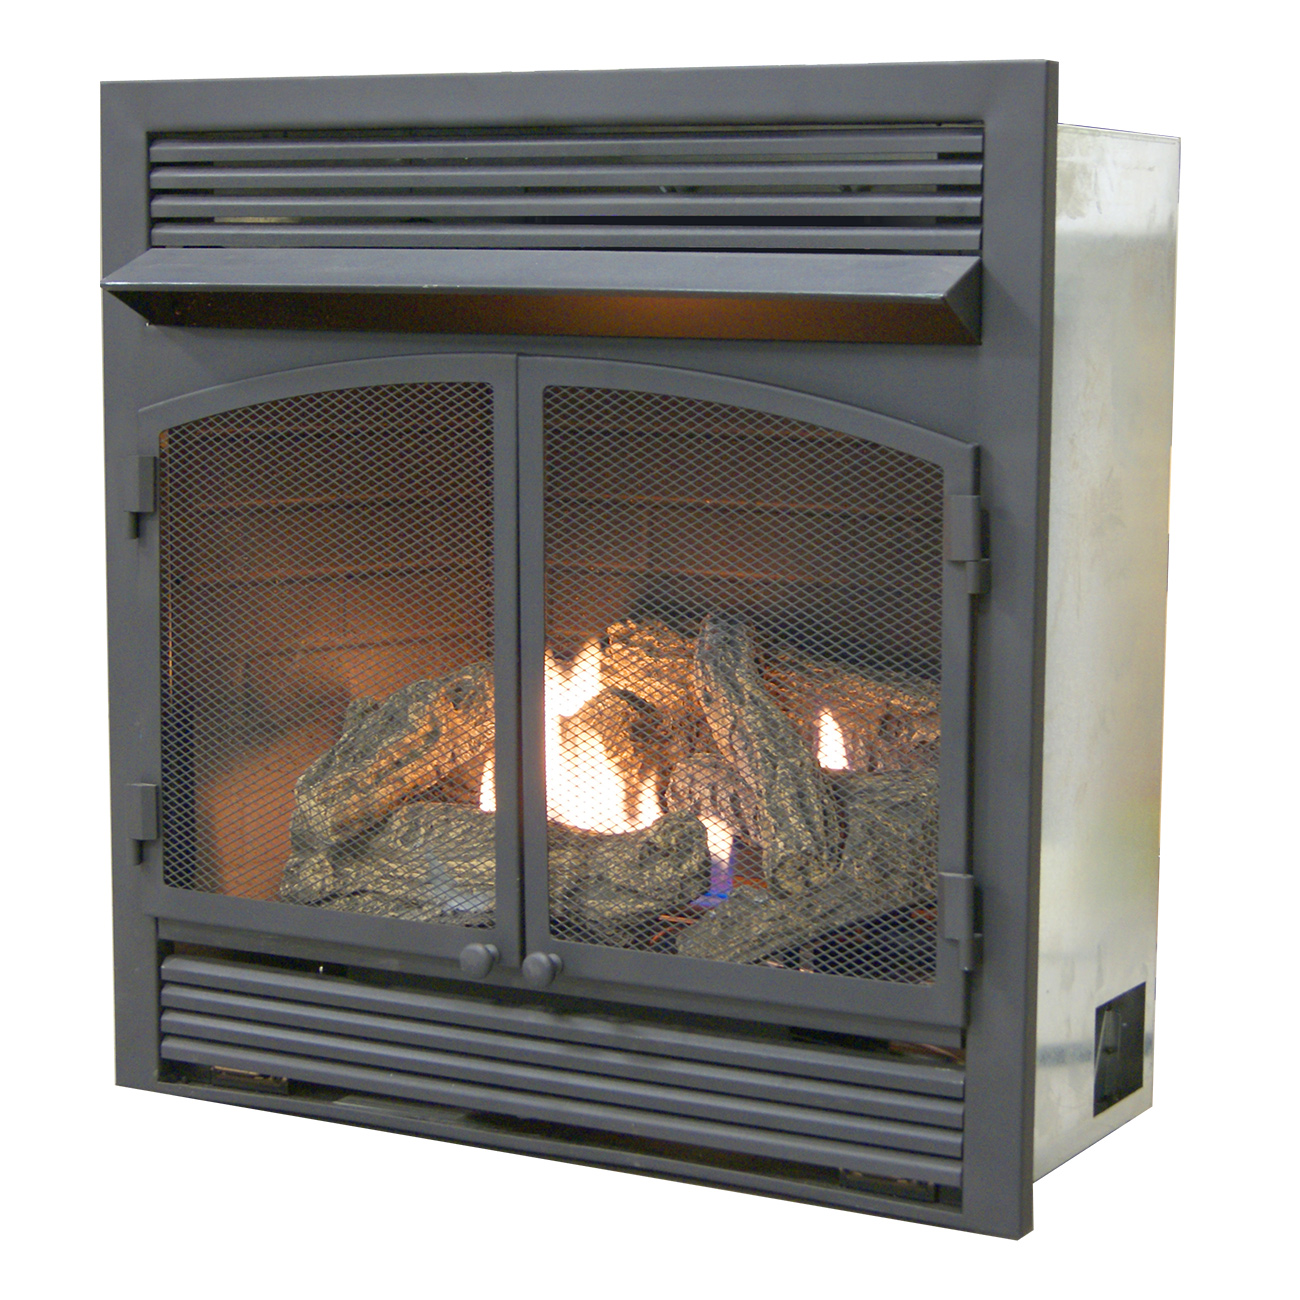 Procom Propane Fireplace Best Lowes